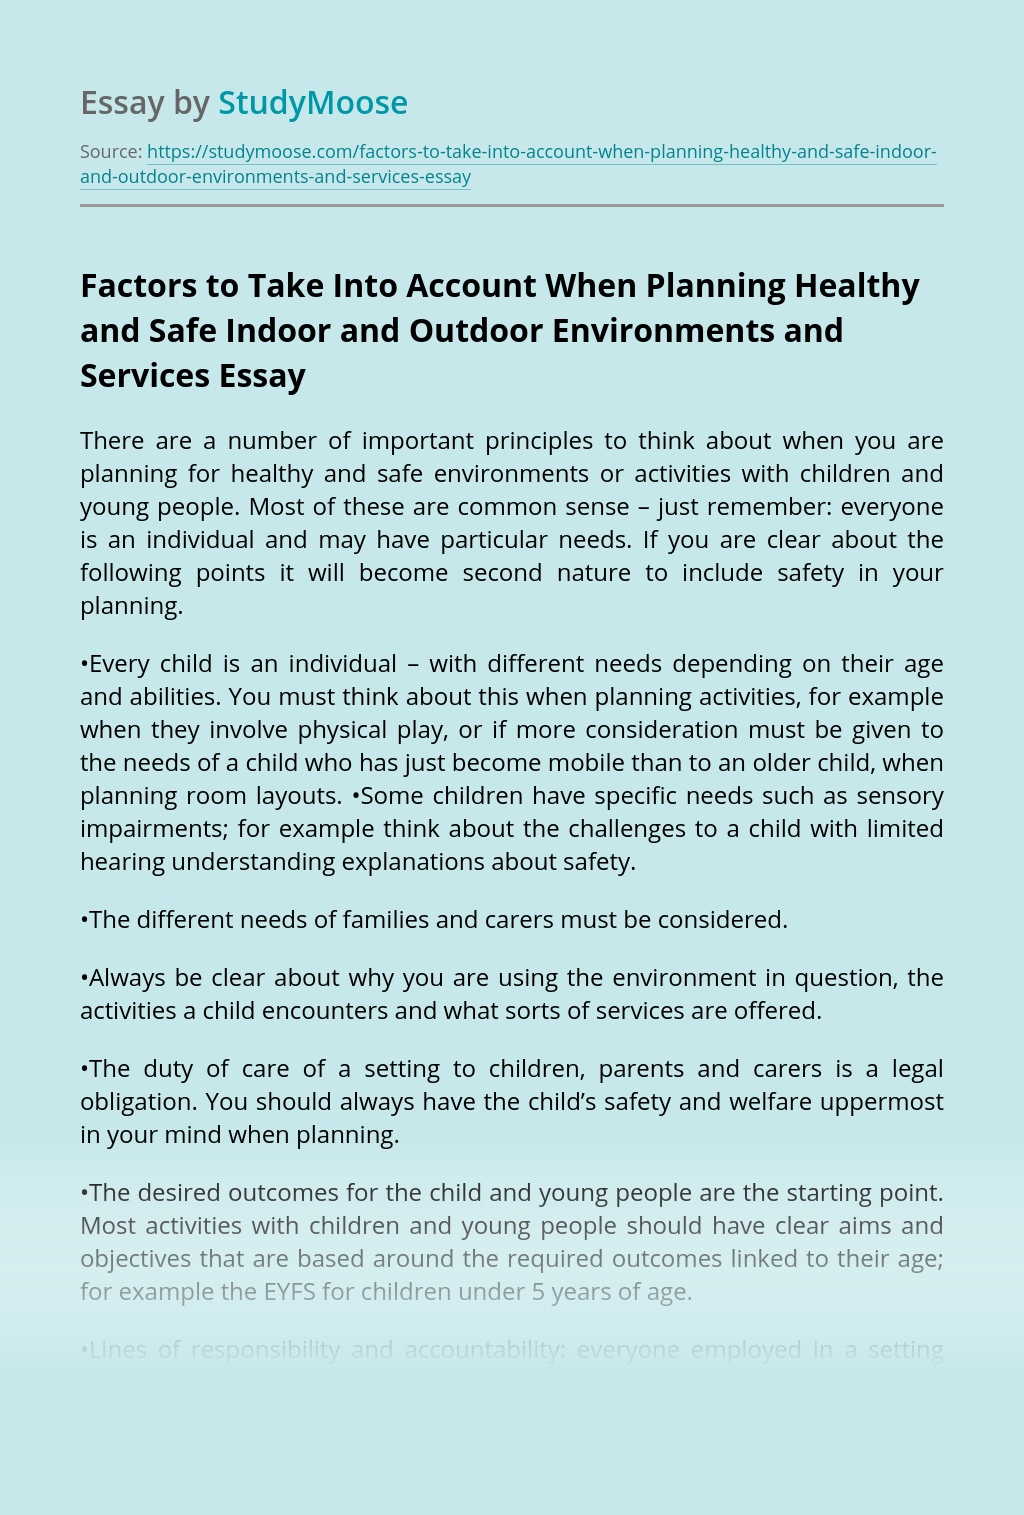 Factors to Take Into Account When Planning Healthy and Safe Indoor and Outdoor Environments and Services